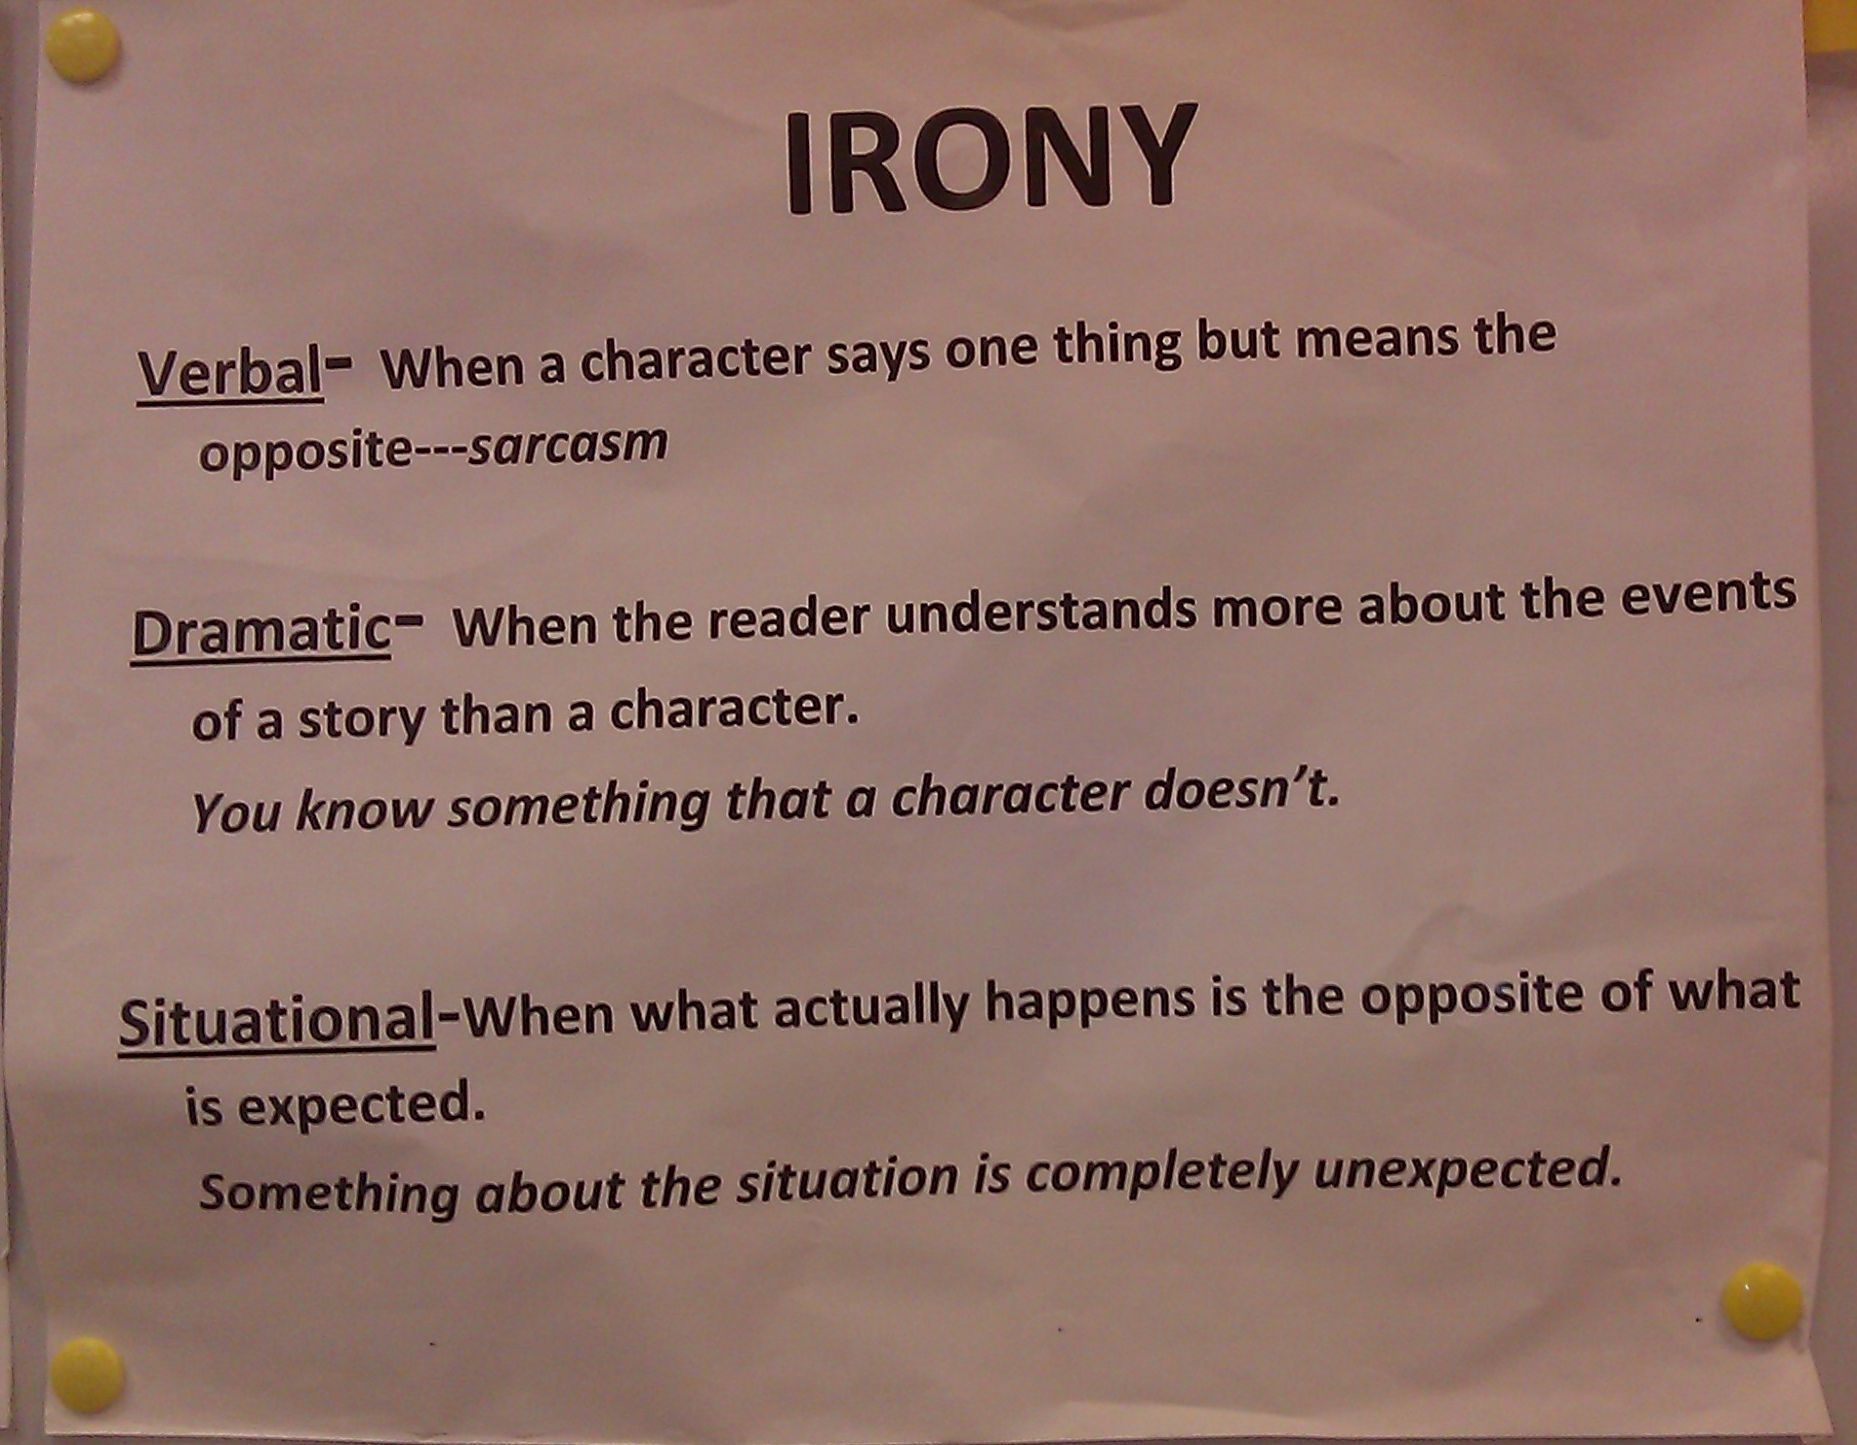 3 types of irony essay Irony in literature essay examples 15 total results the three types of irony in the cask of amontillado, a short story by edgar allan poe 1,598 words 4 pages figuring out the ironies in the story of an hour by kate chopin 363 words 1 page antigone's relationship with her brother in antigone by sophocles.